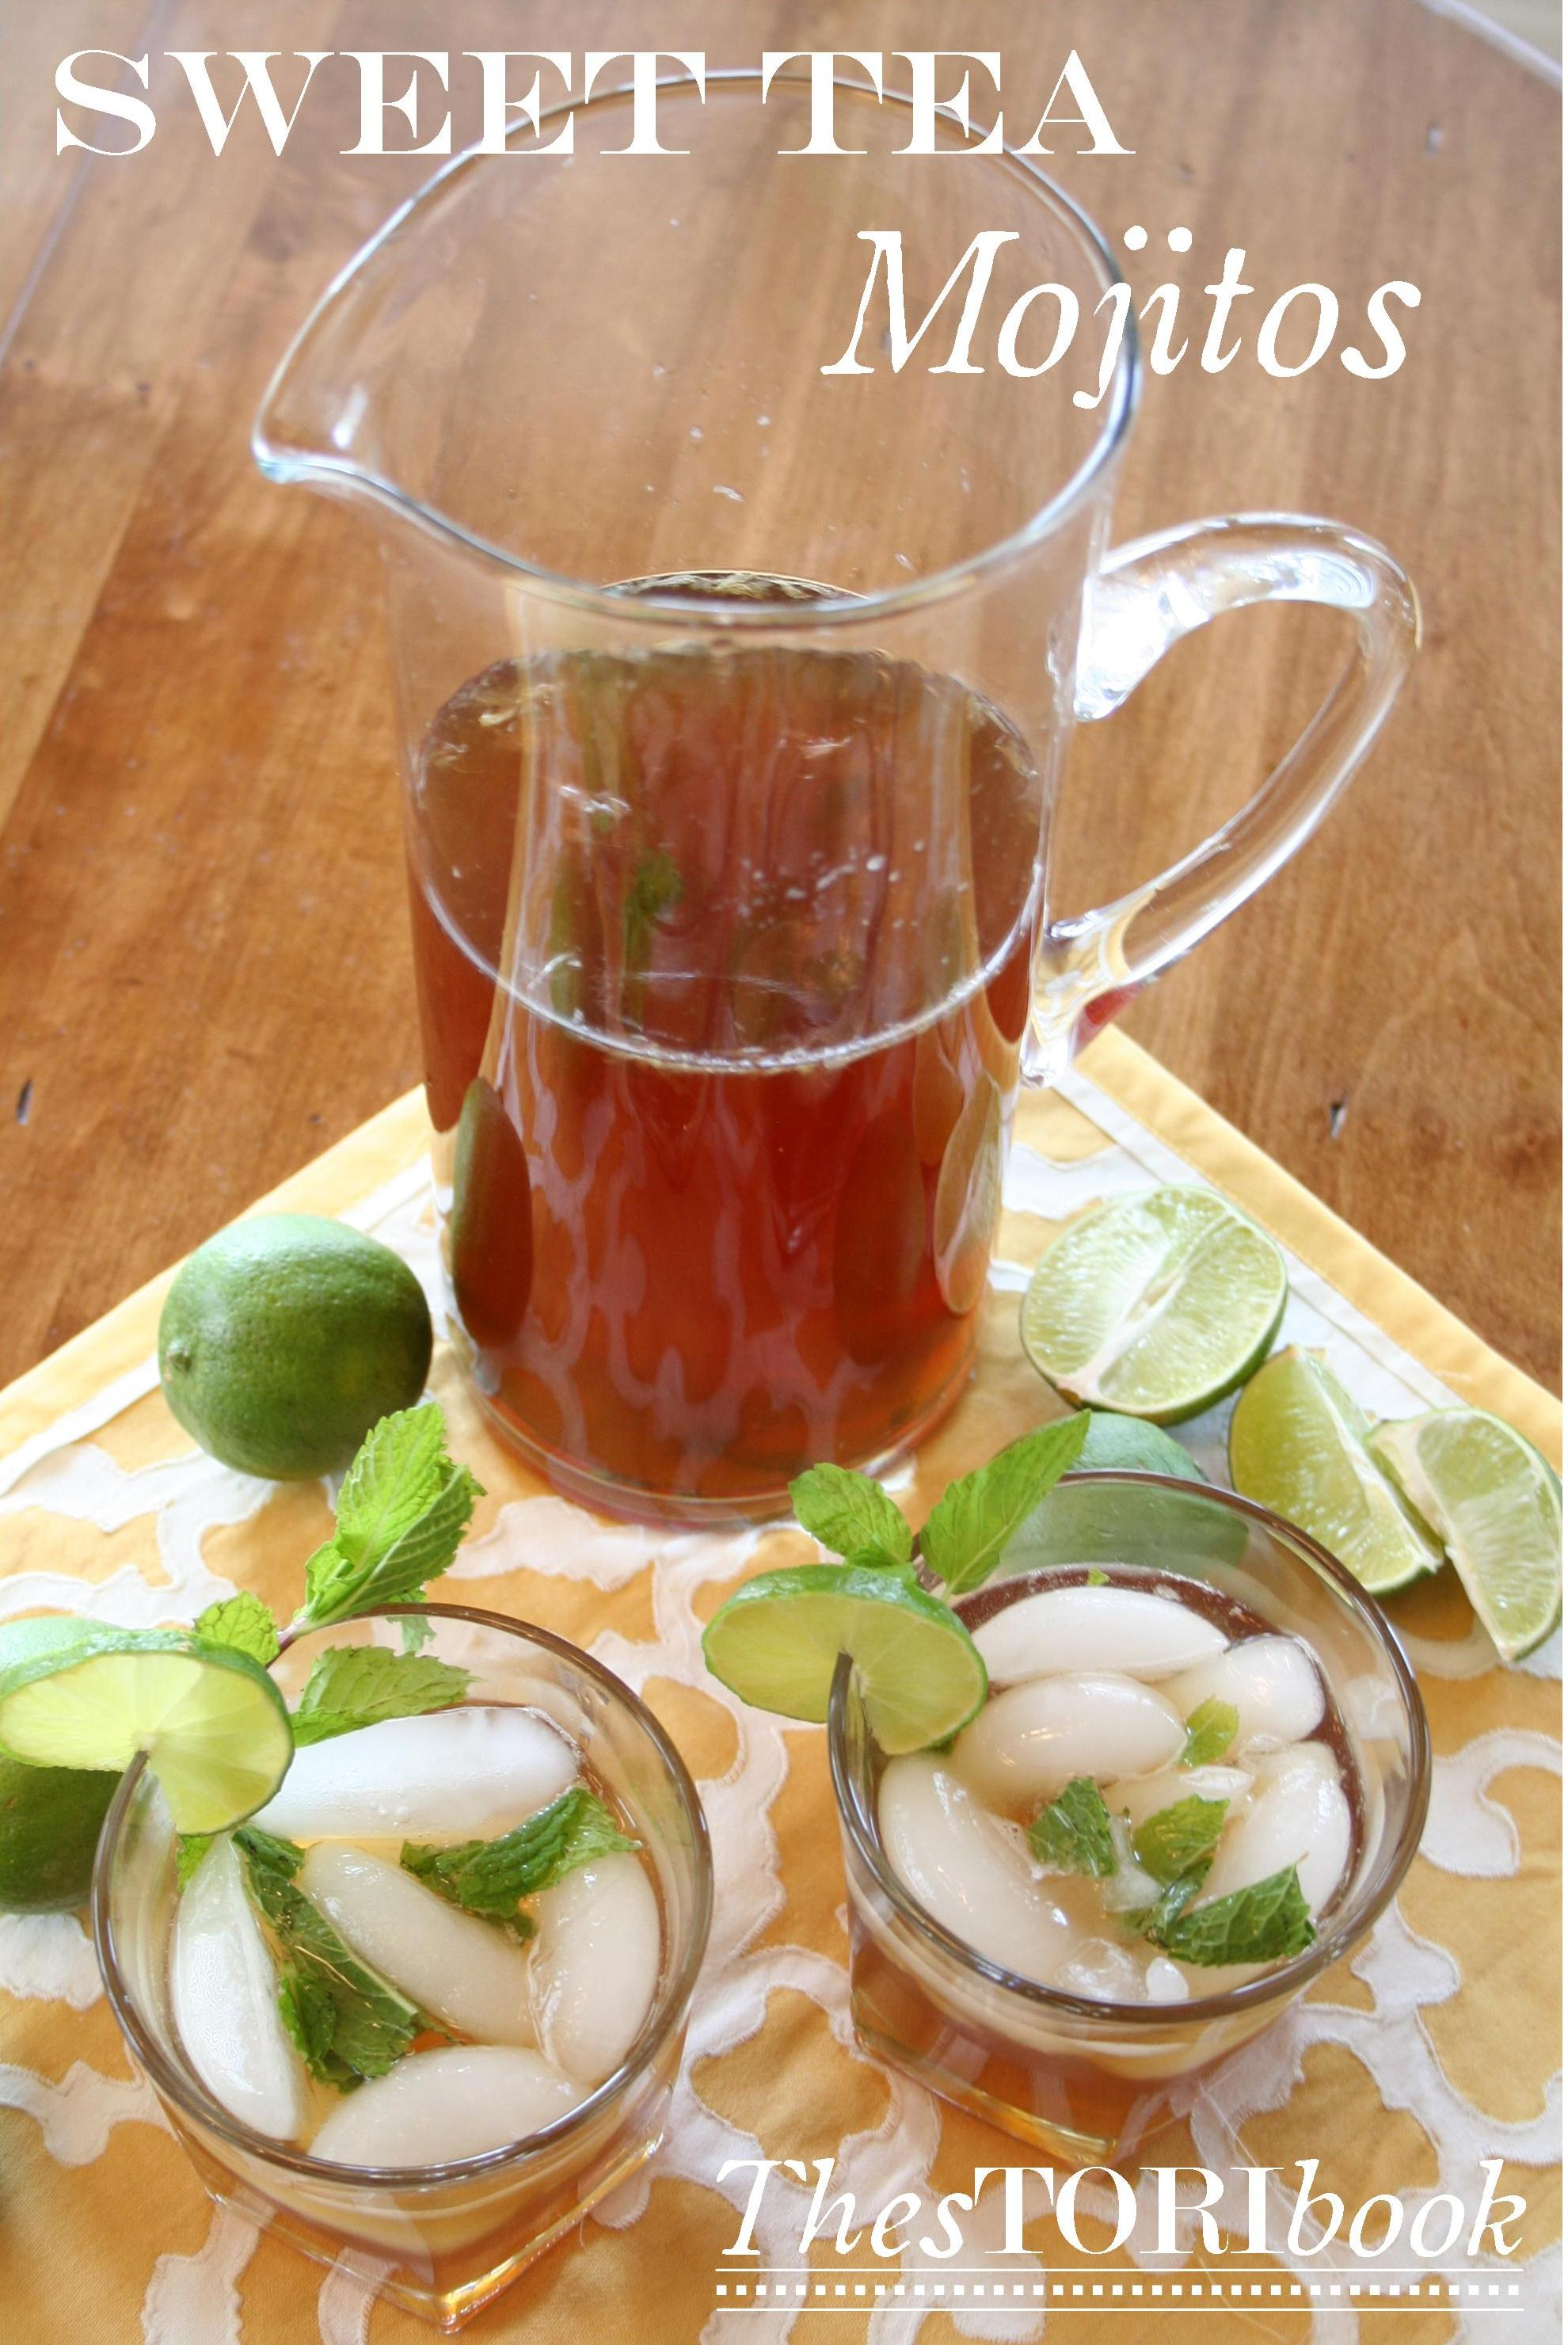 A delicious sweet tea mojito recipe.